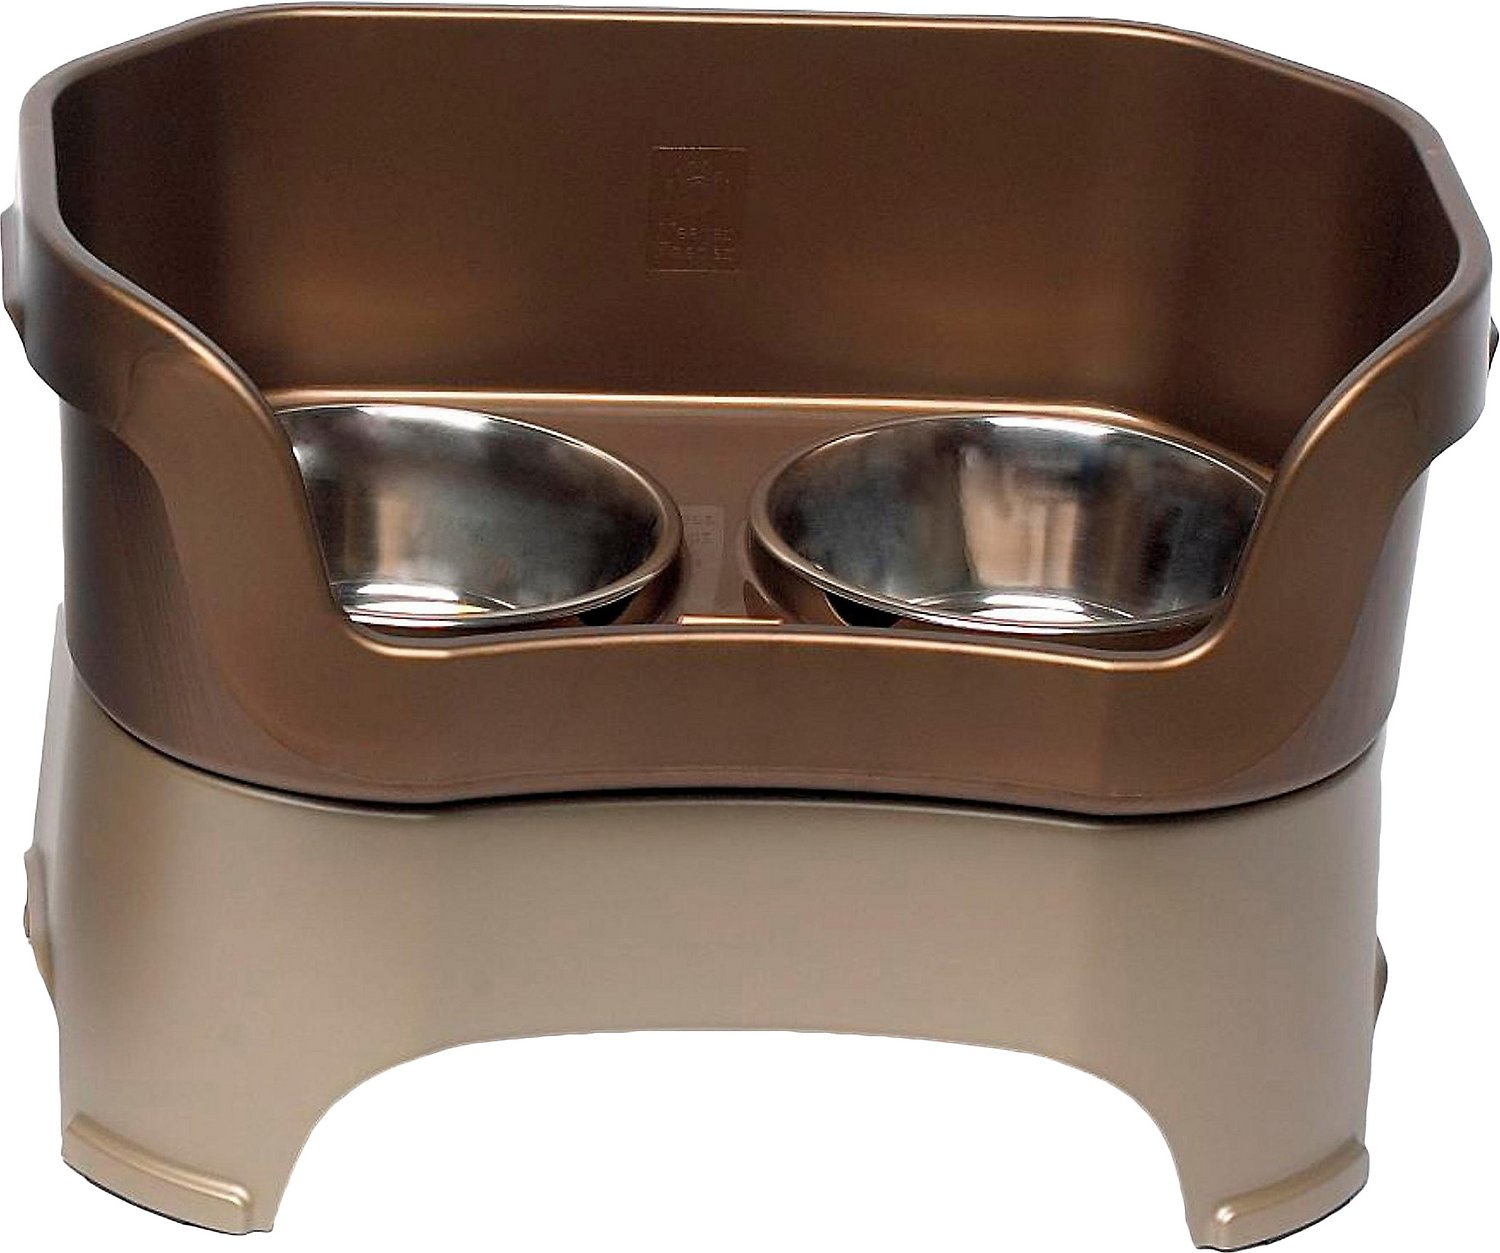 Elevated Dog Bowl | Elevated Dog Bowls | Petsmart Dog Feeder